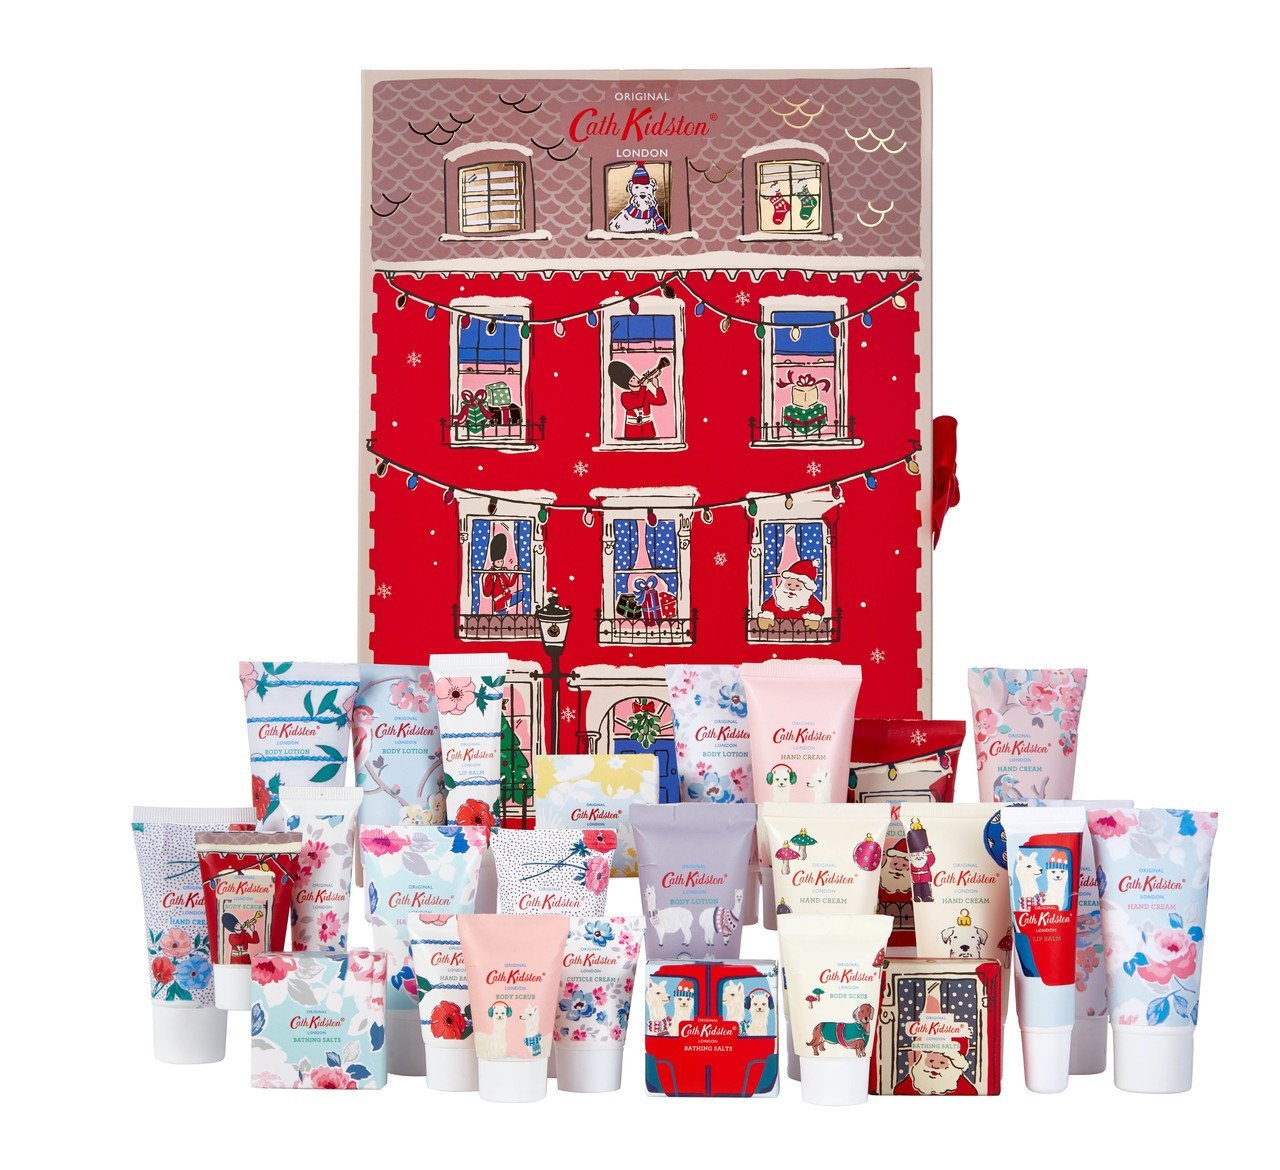 cath kidston beauty advent calendar beauty advent calendars christmas